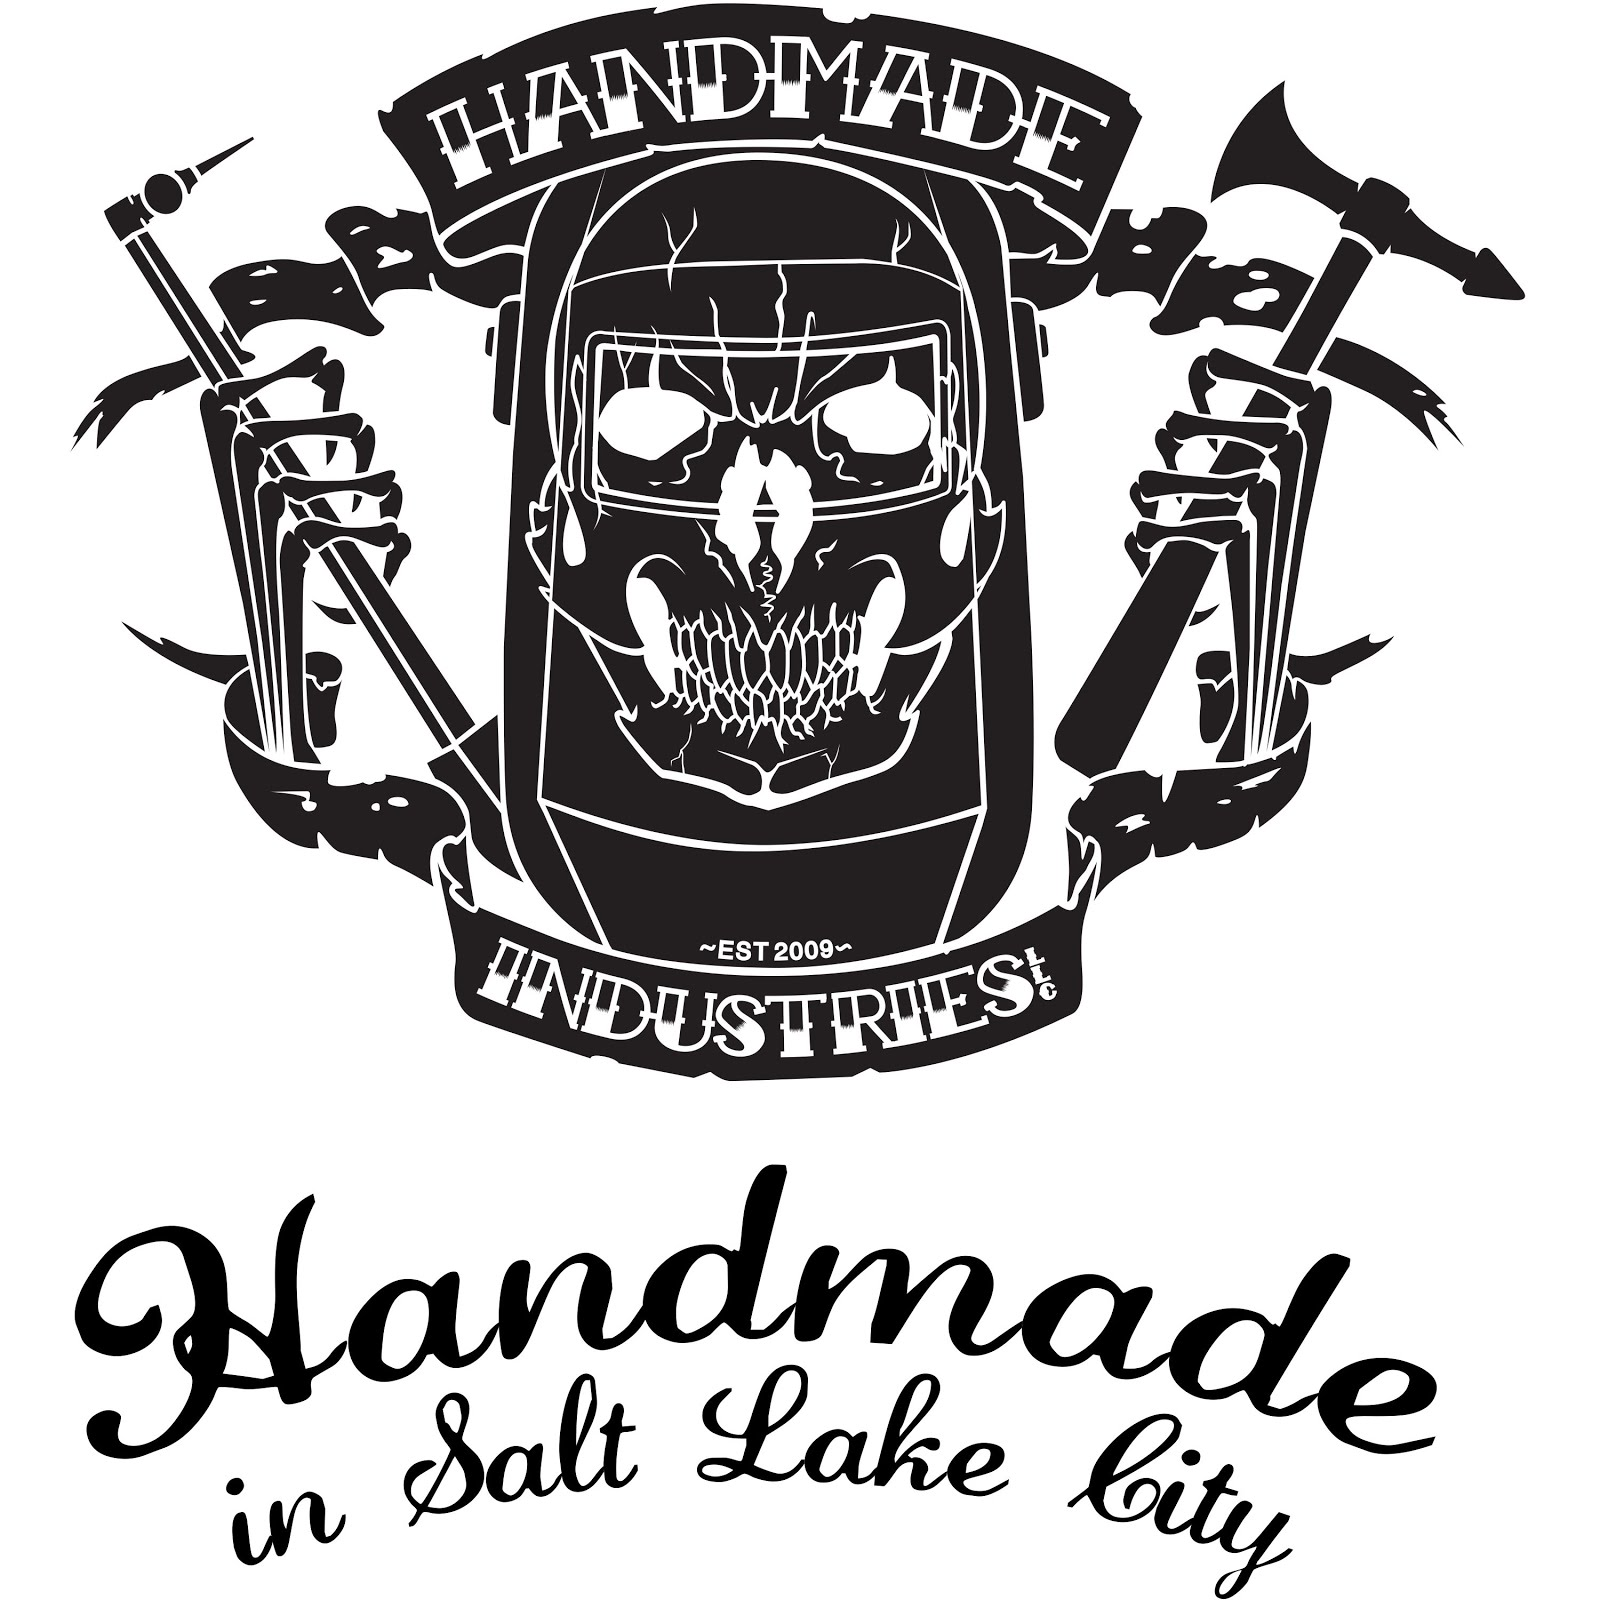 HANDMADE INDUSTRIES